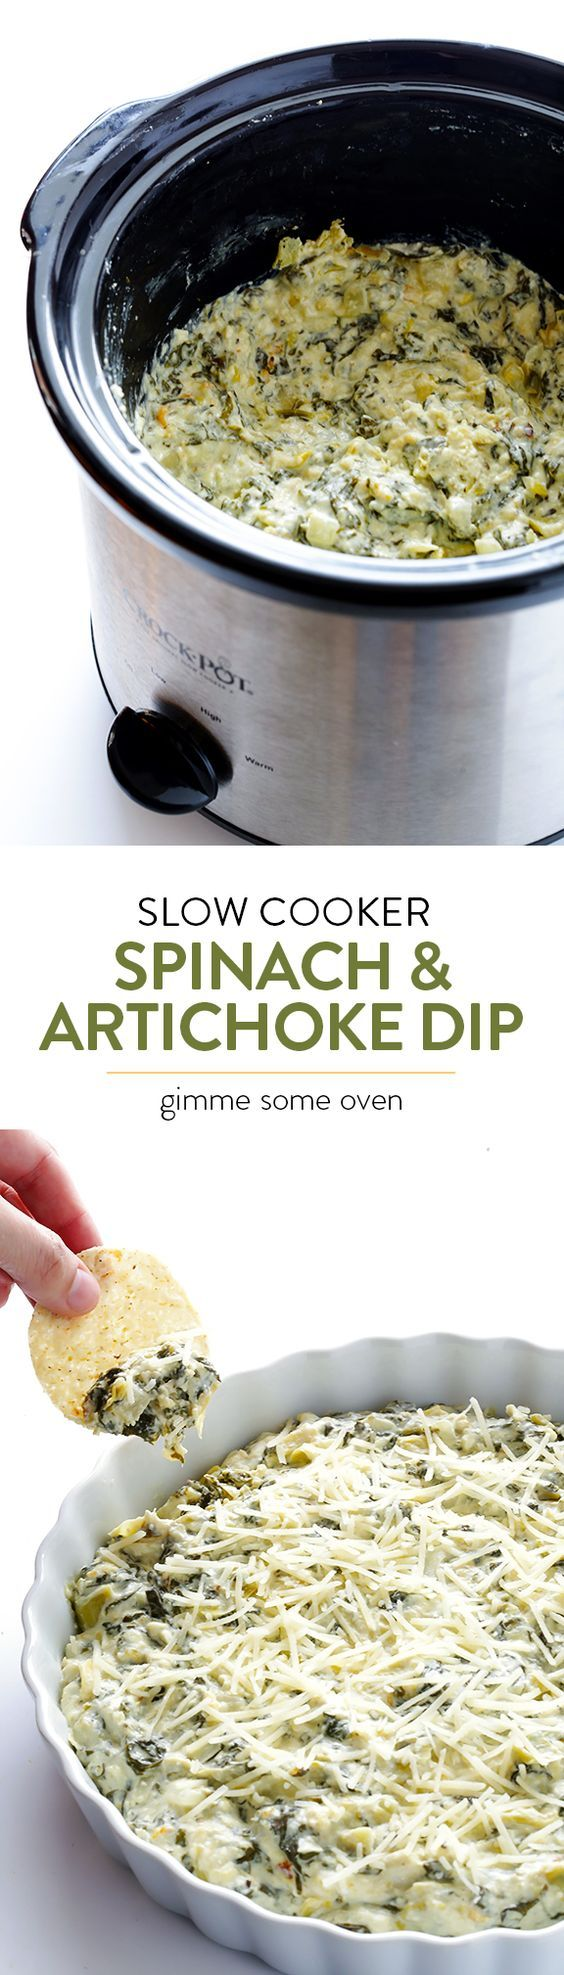 Slow Cooker Spinach Artichoke Dip Recipe plus 49 of the most pinned crock pot recipes